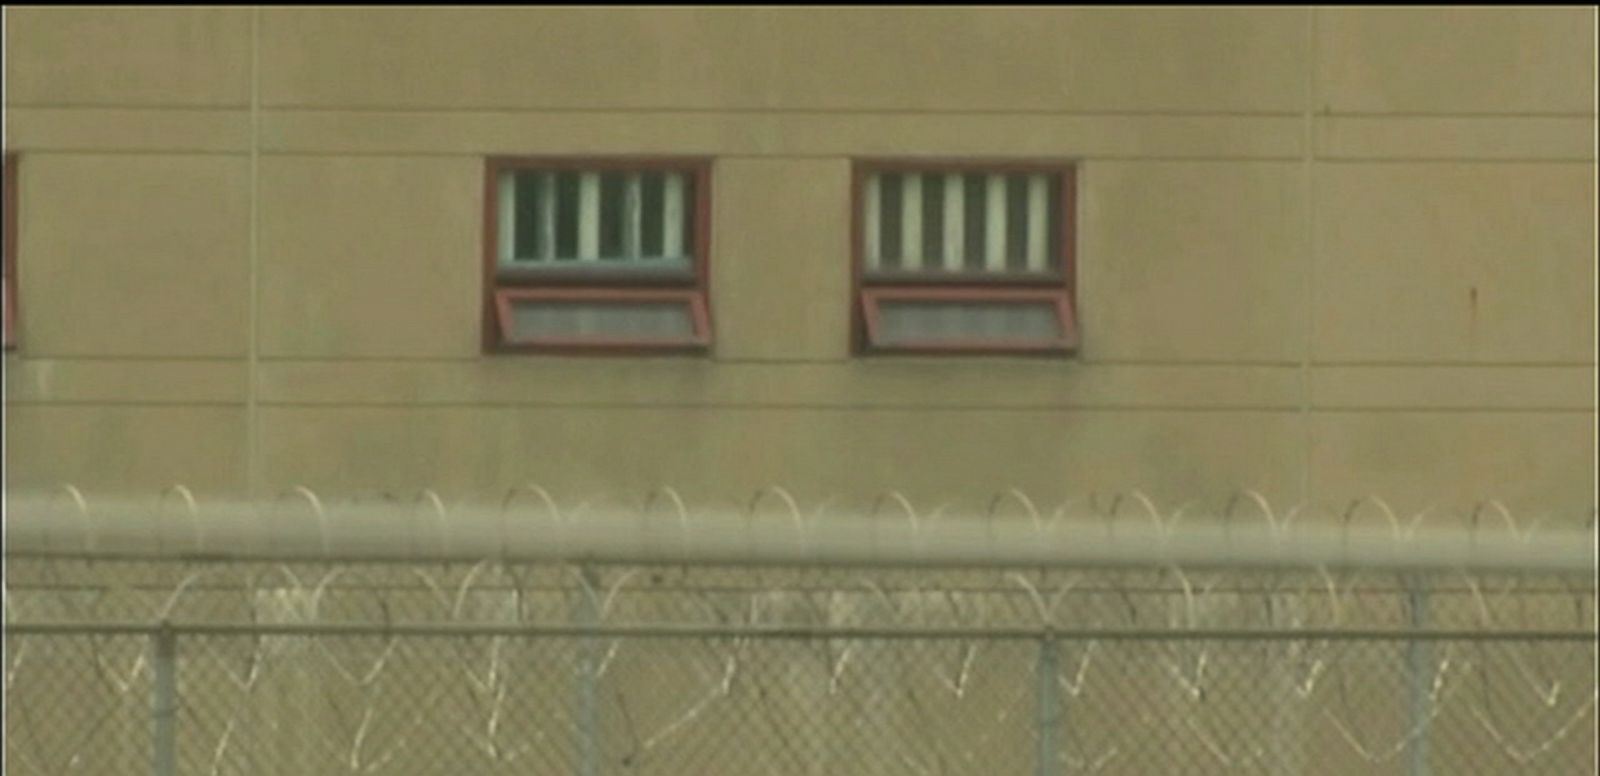 VIDEO: The mayhem broke out on July 29 at Mansfield Correctional Institution in Mansfield, Ohio.